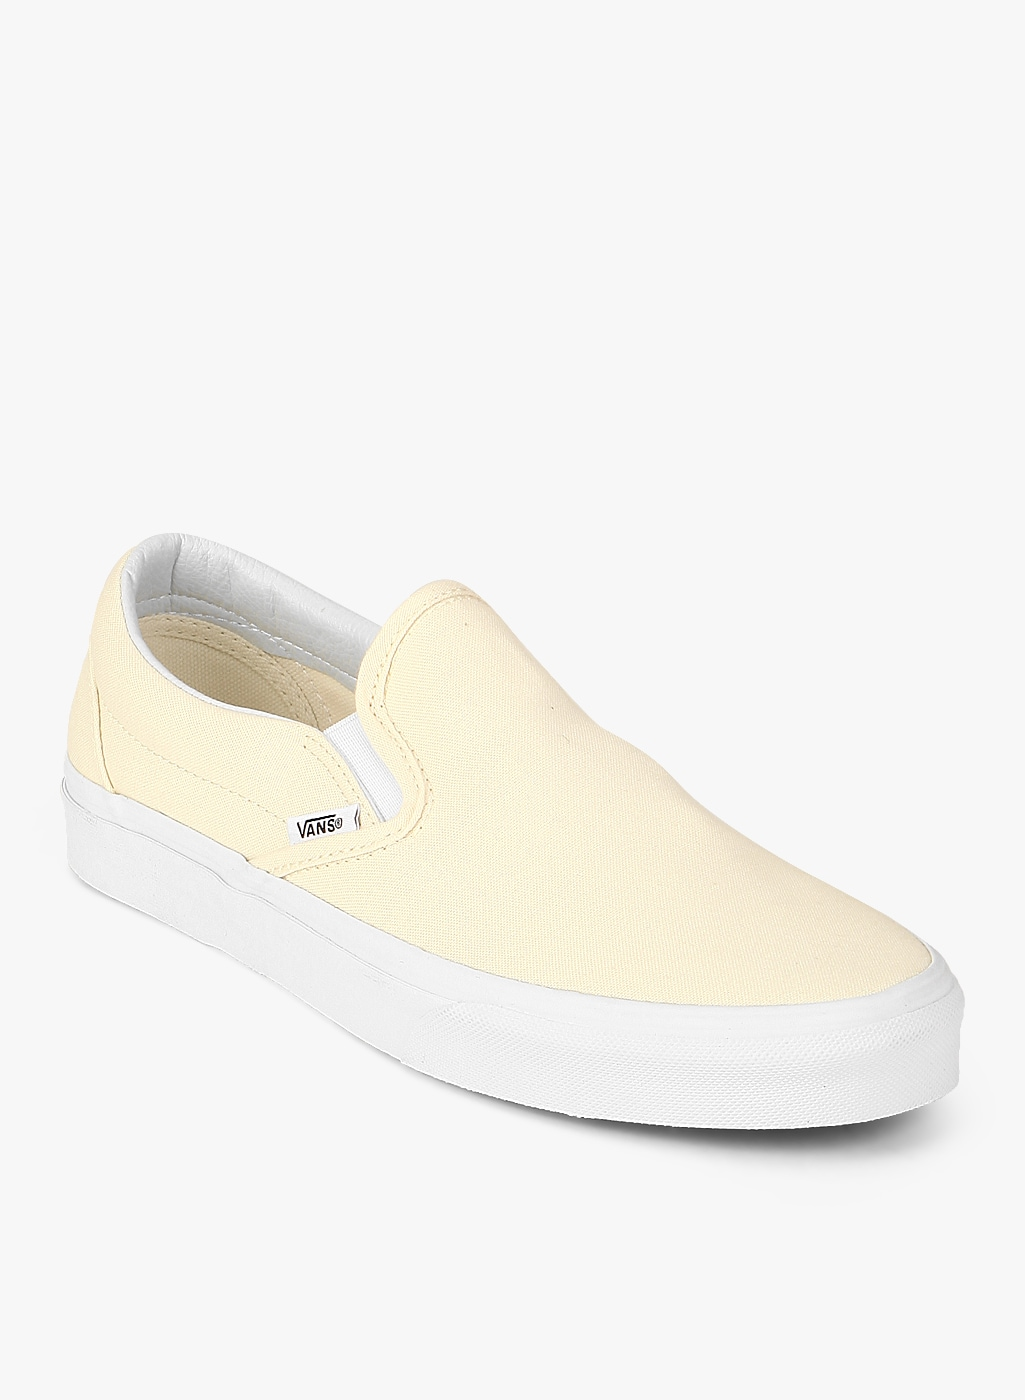 4e5581a32abf Vans Solana Sf Cream Sneakers for women - Get stylish shoes for ...